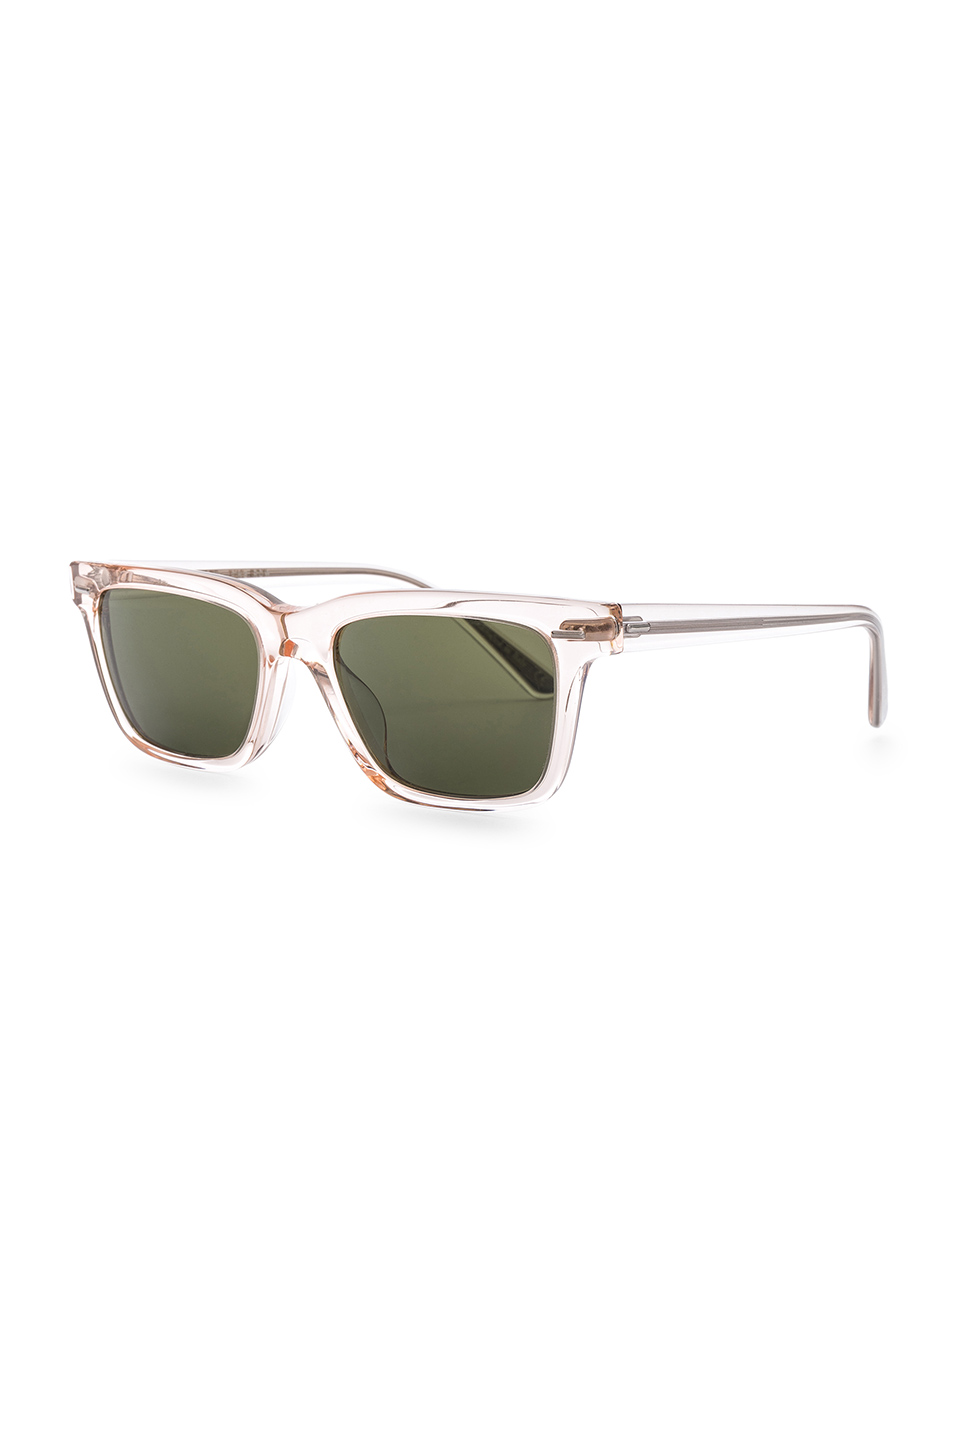 Oliver Peoples X The Row Clear Sunglasses